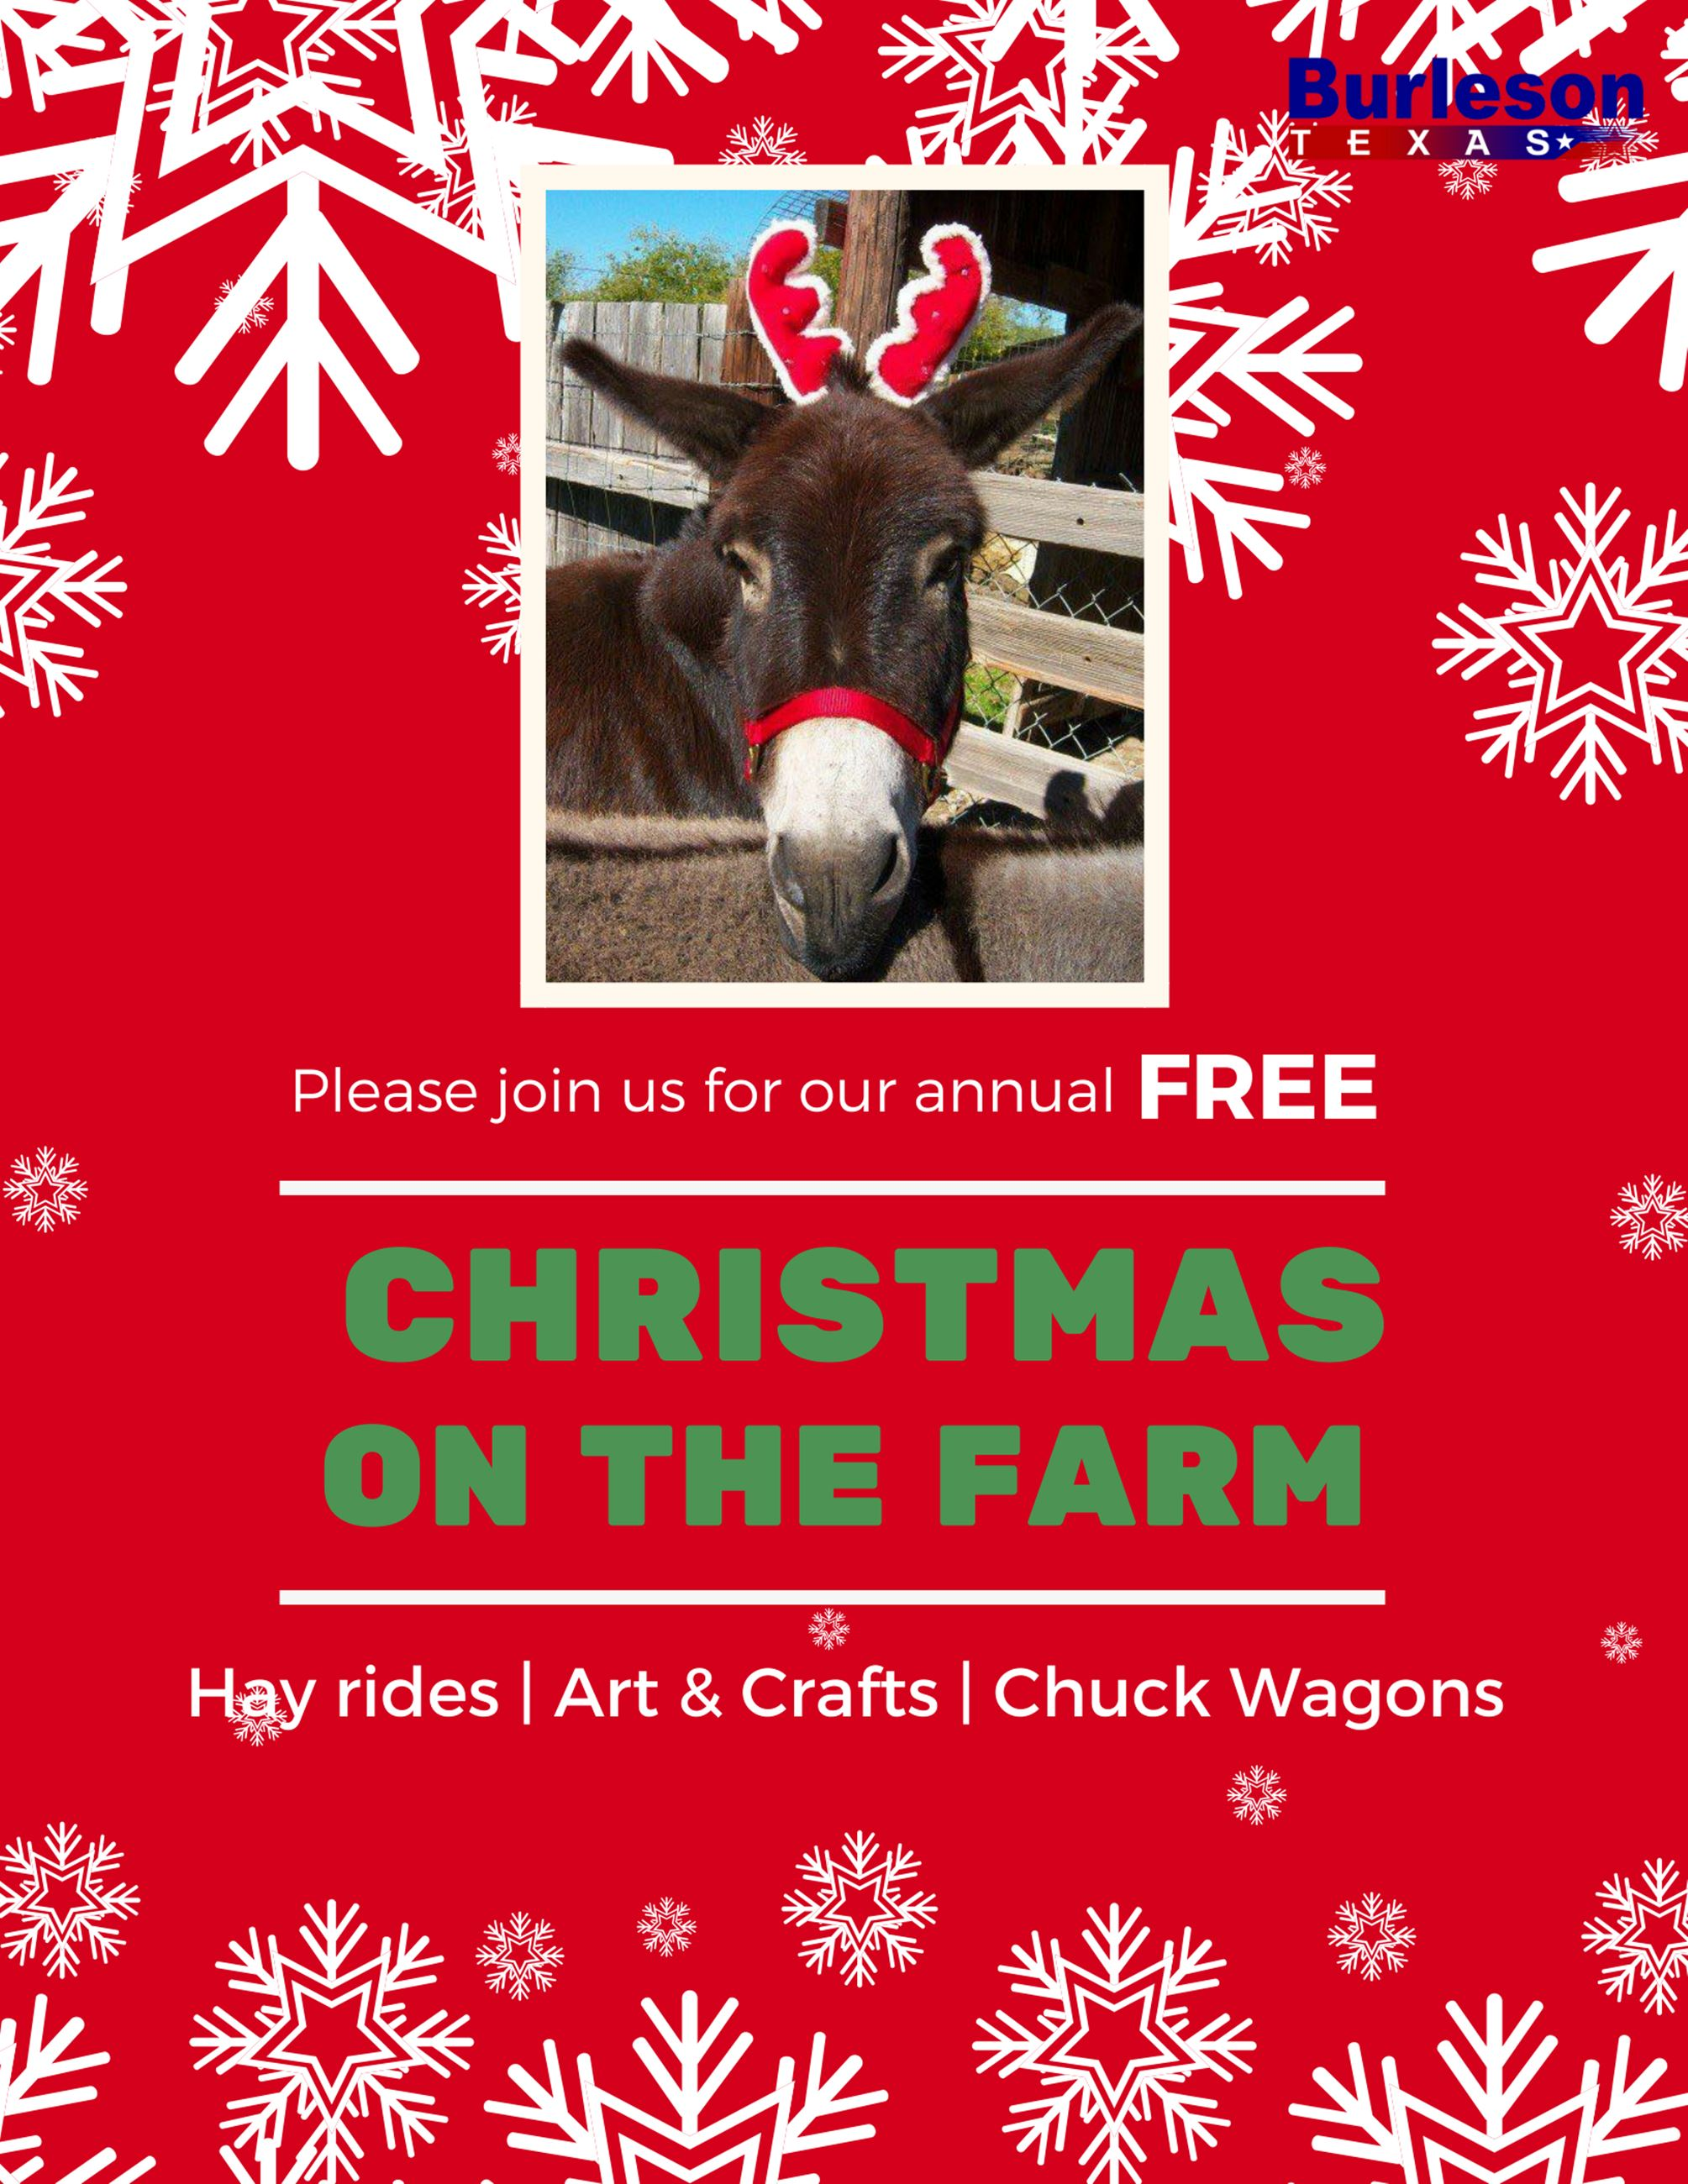 2018 Christmas on the Farm Flyer for website